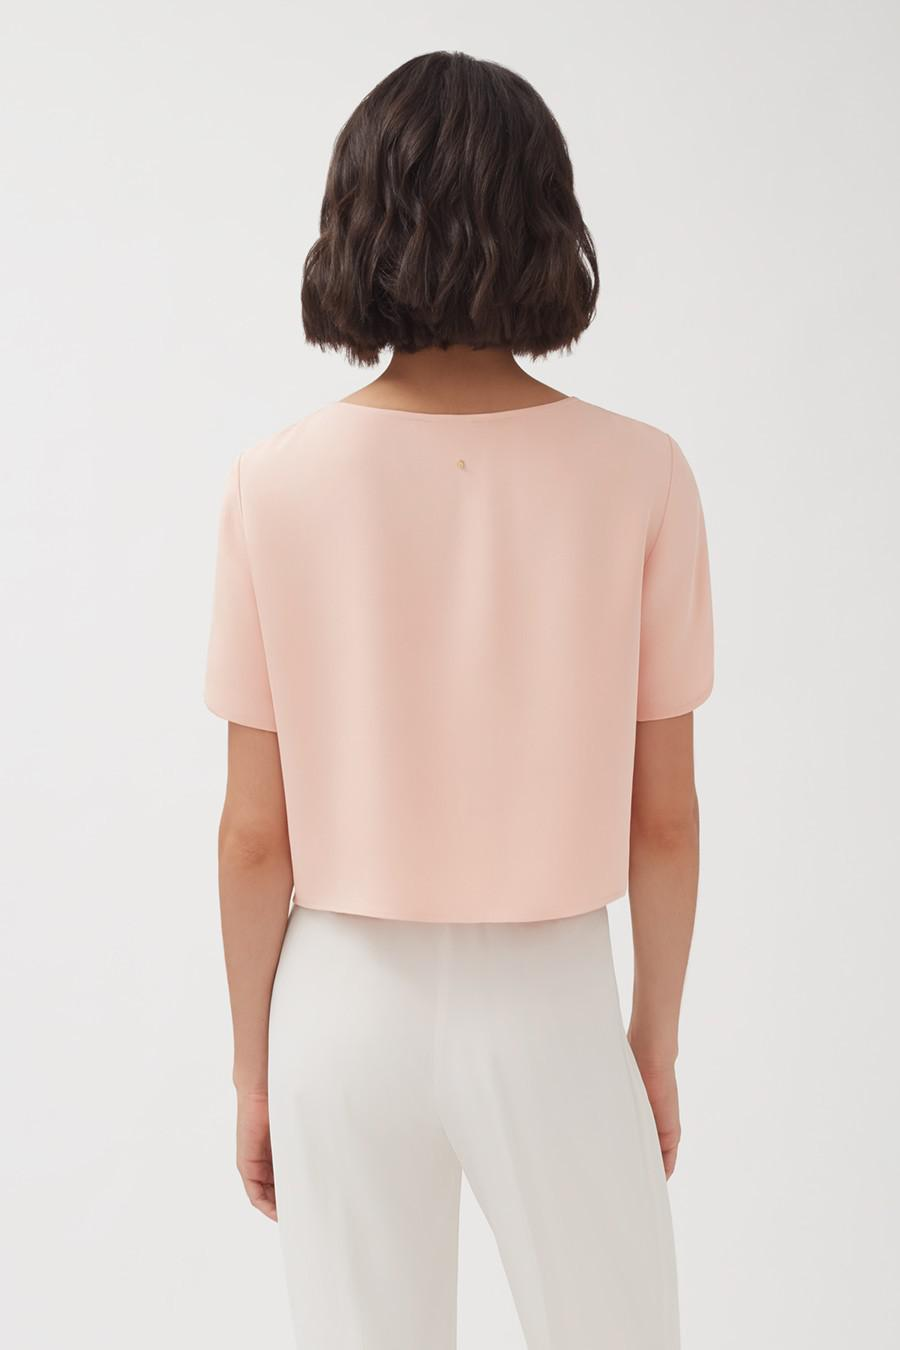 Women's Silk Cropped Tee in Soft Rose   Size: XL   3-Ply Silk by Cuyana 2